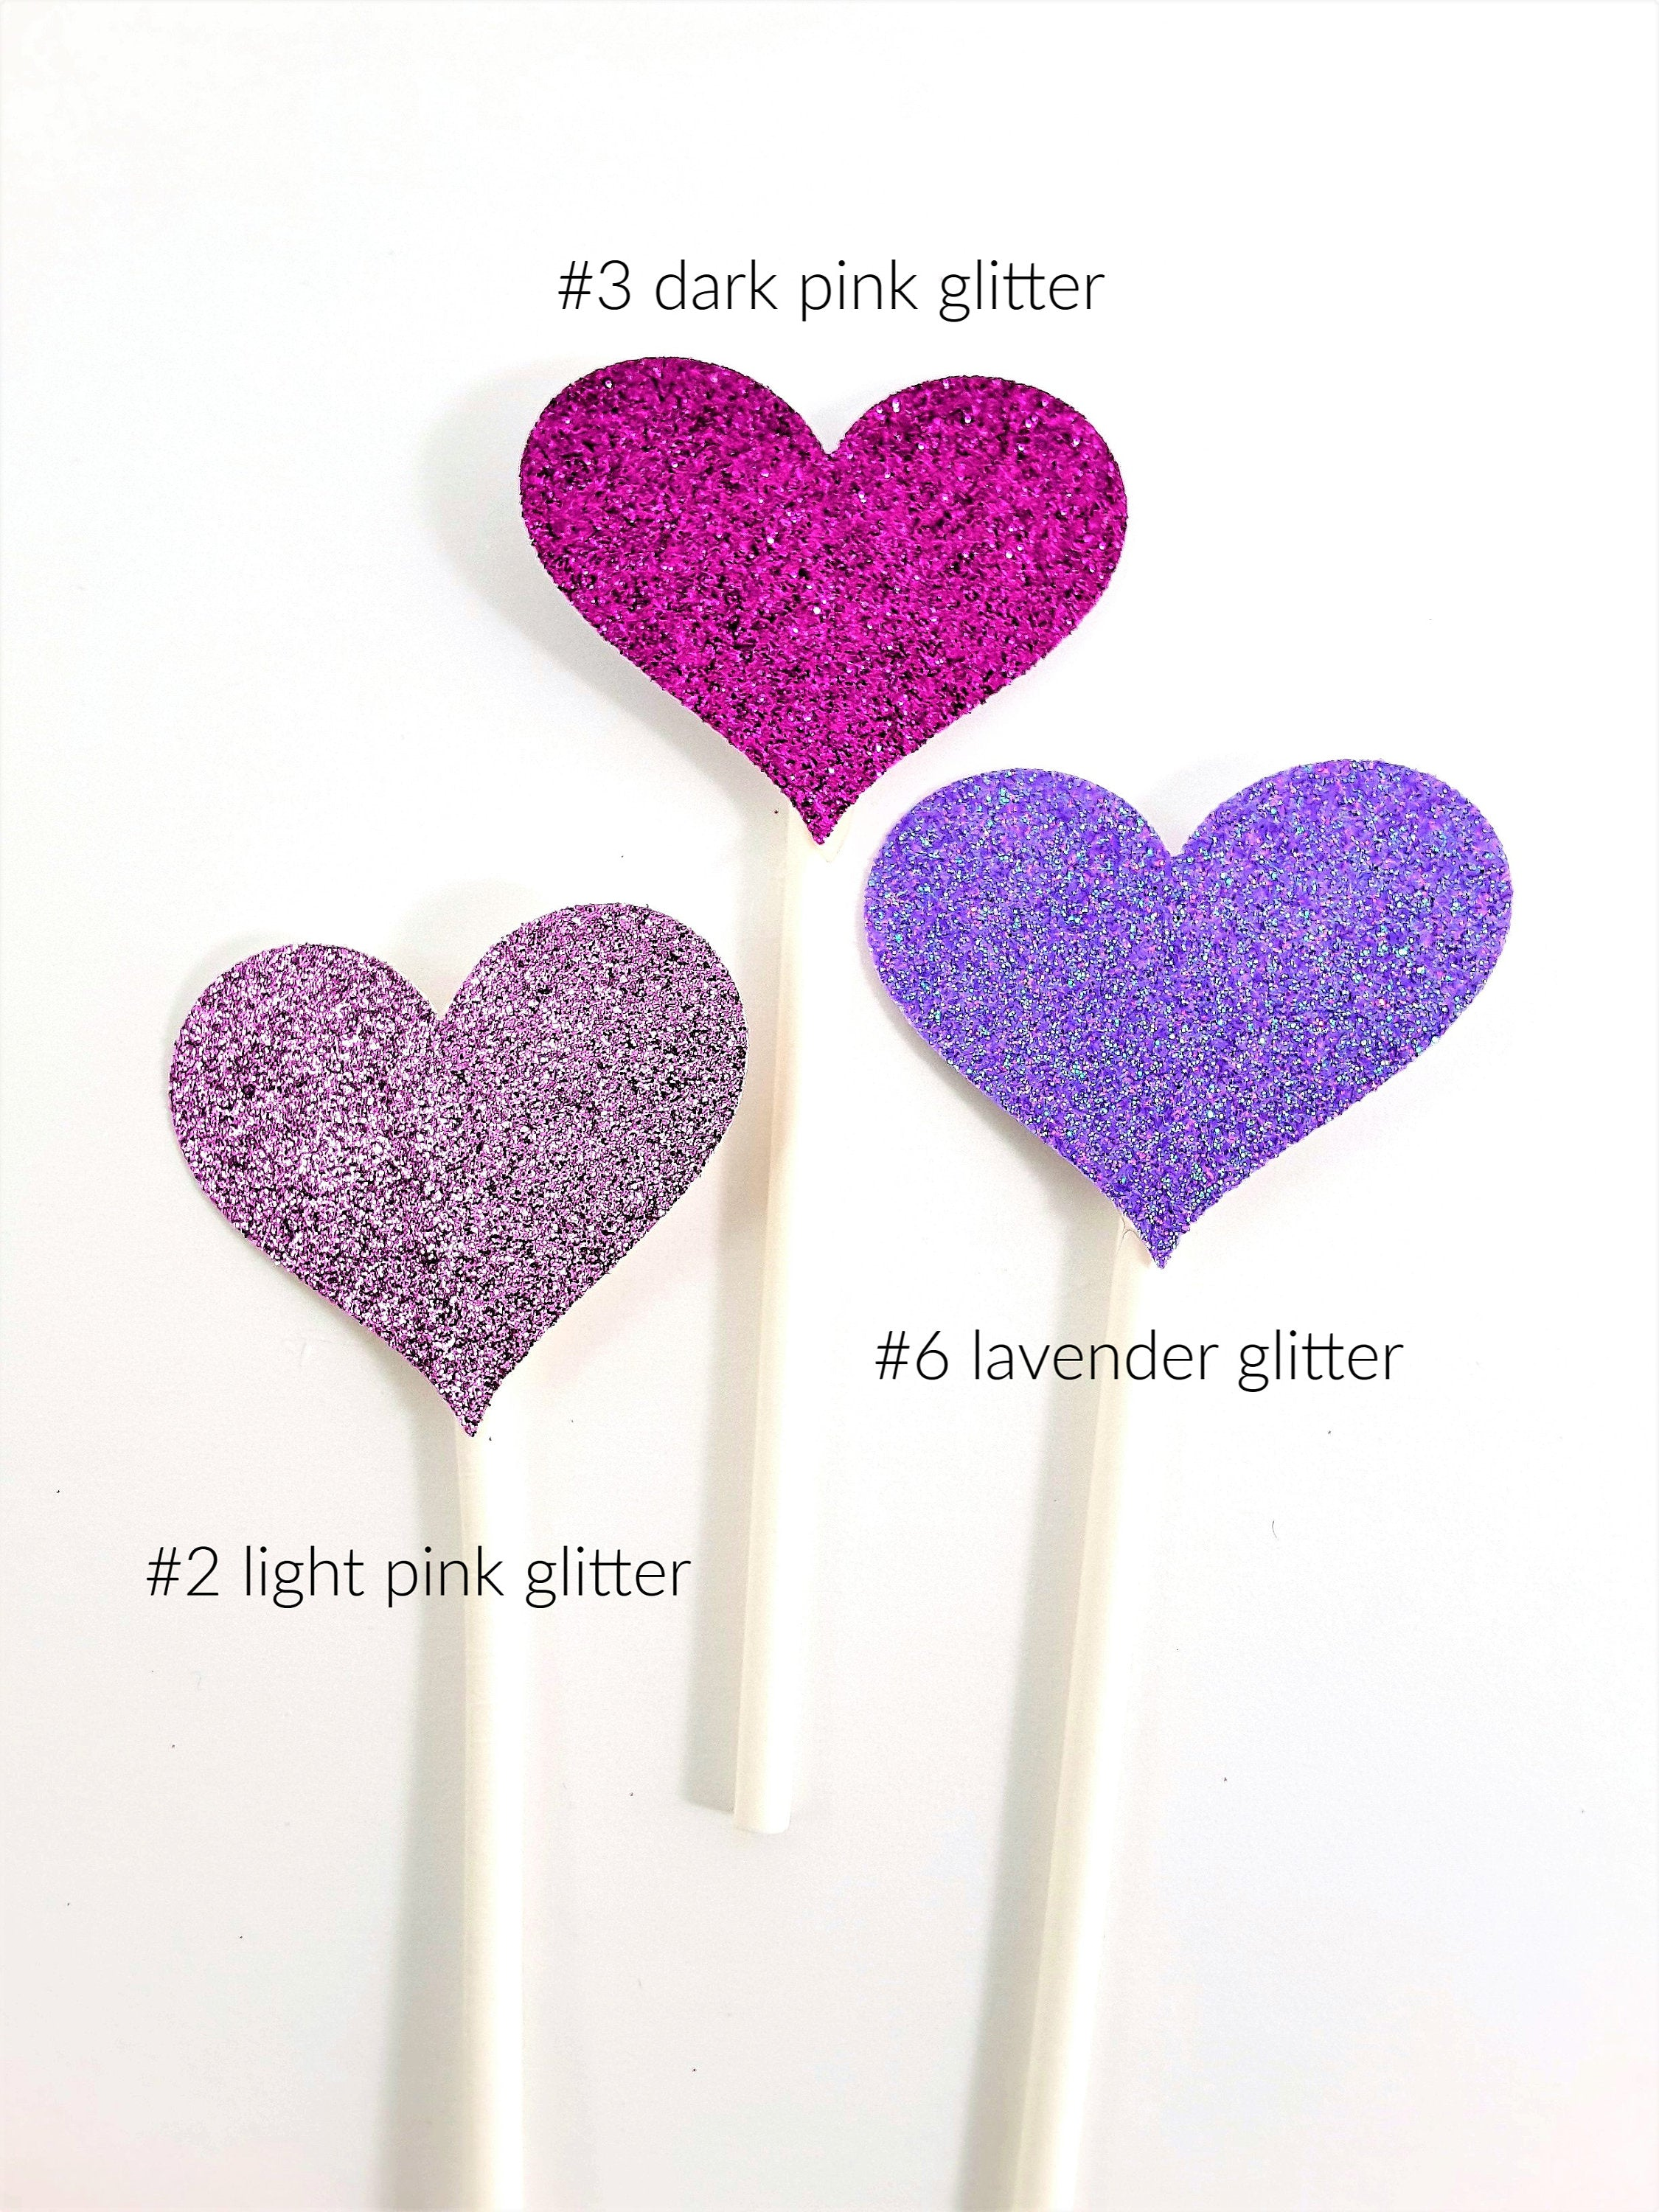 Rainbow Hand with Glittered Hearts Cupcake Topper Collection for LGTBI - all occasion party decor - TheLastWordBish.com